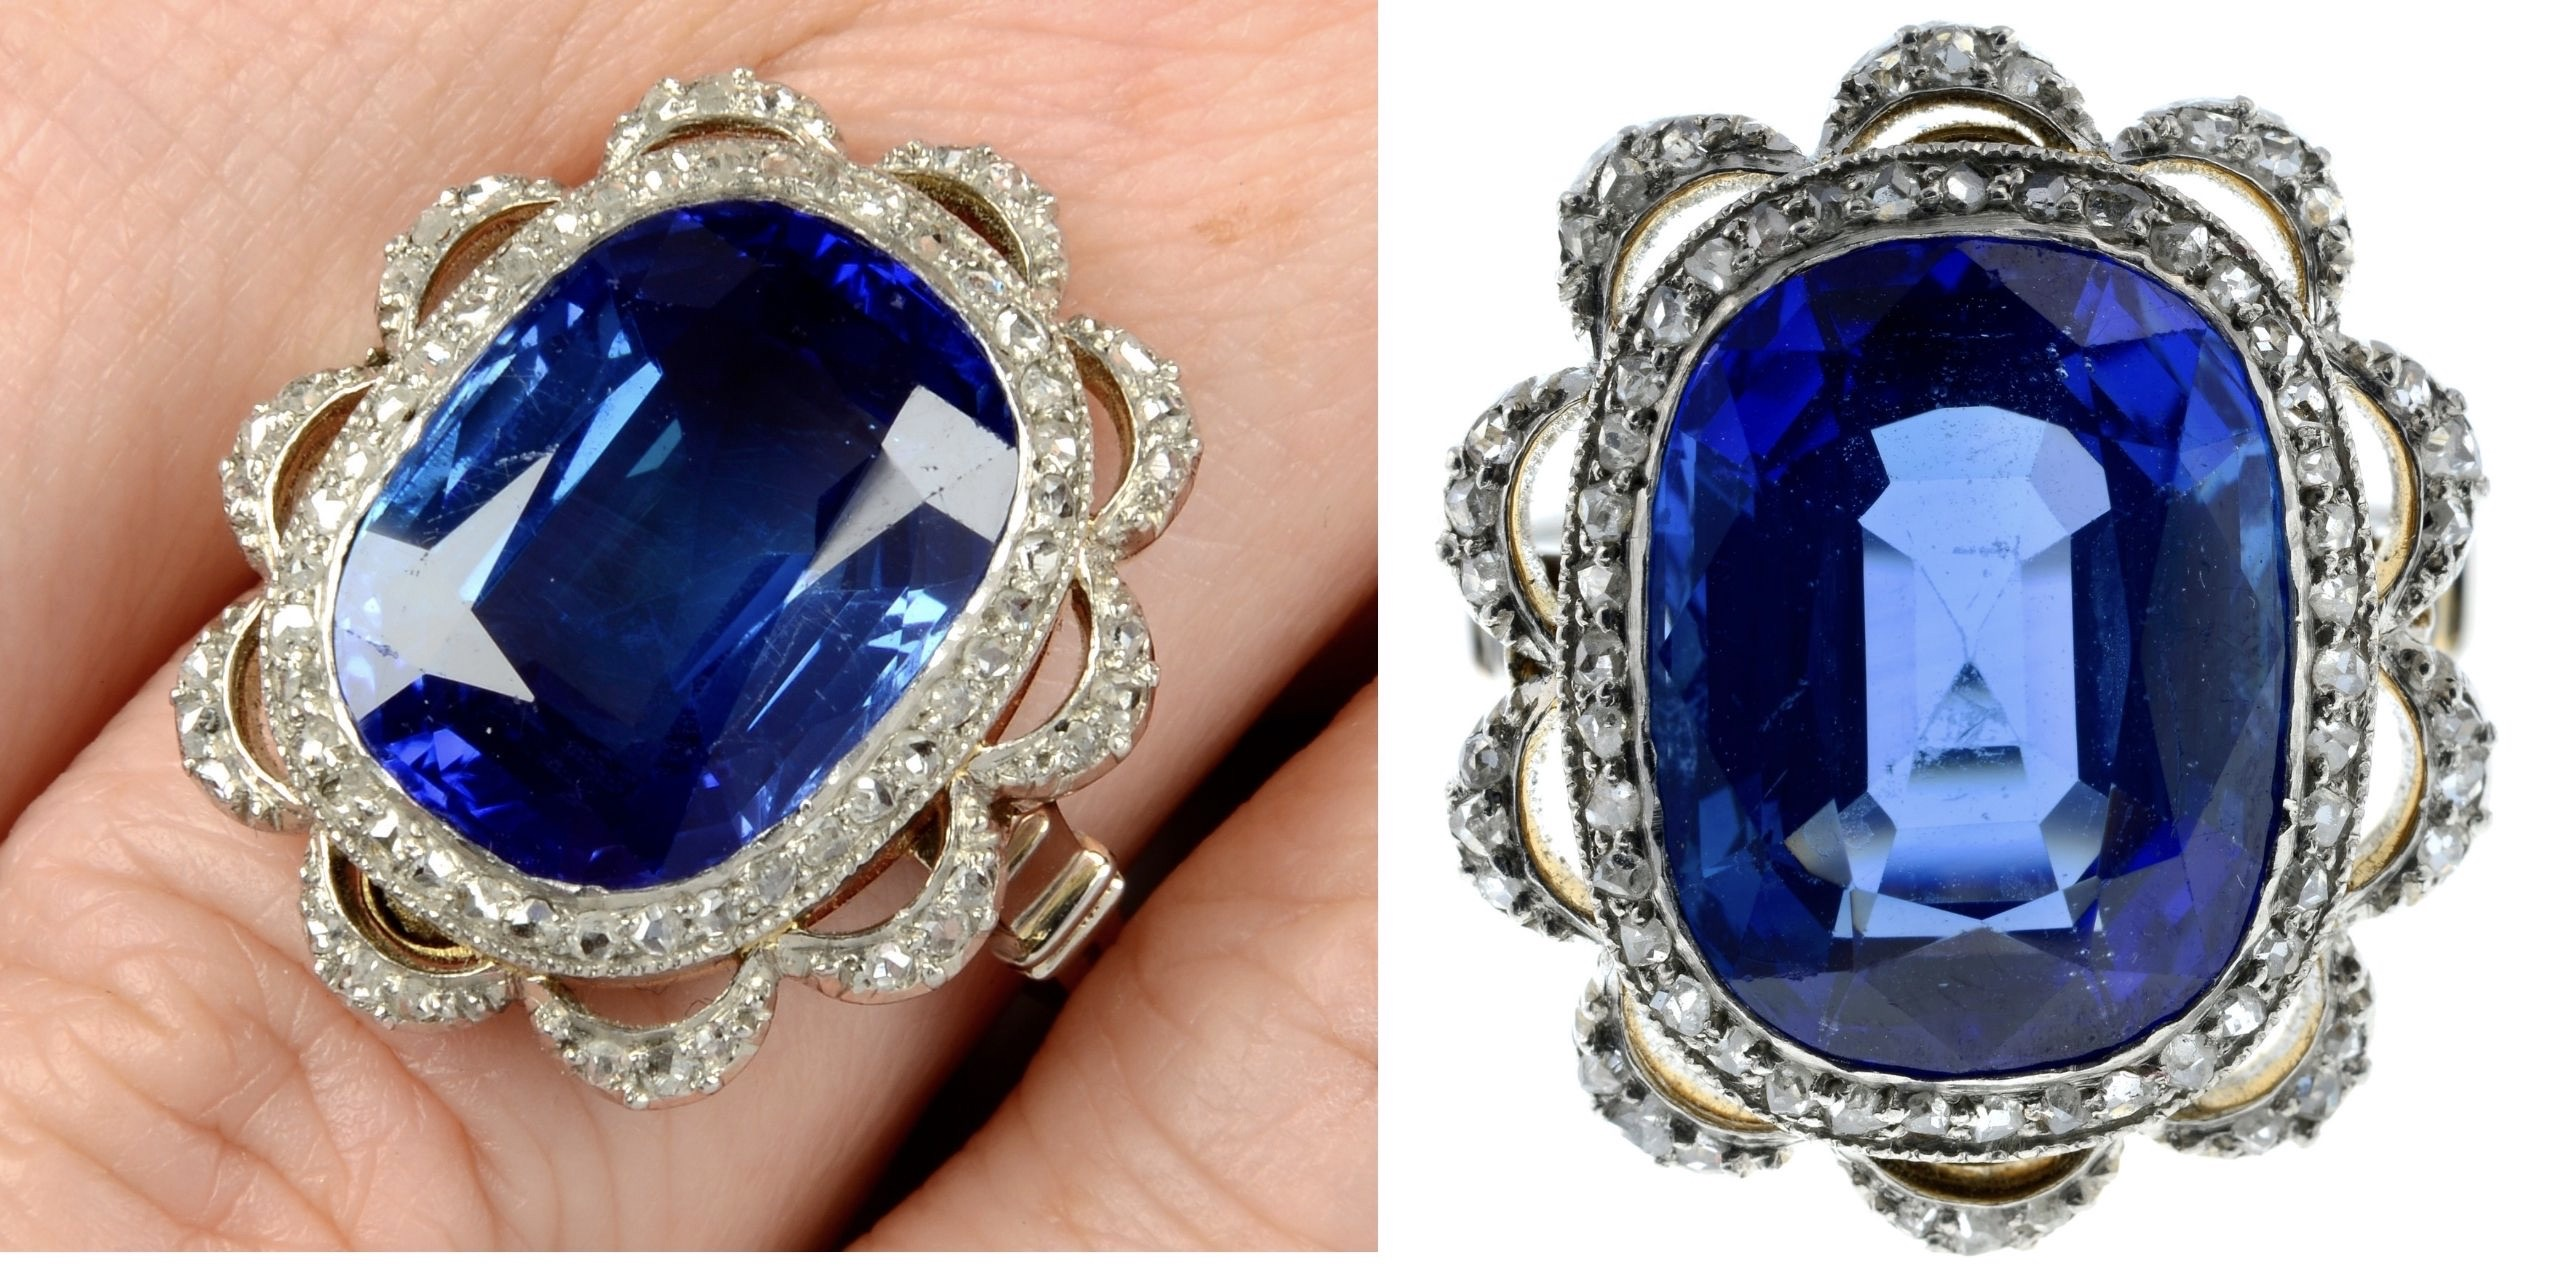 Most expensive sapphire fetches £176,000 at auction